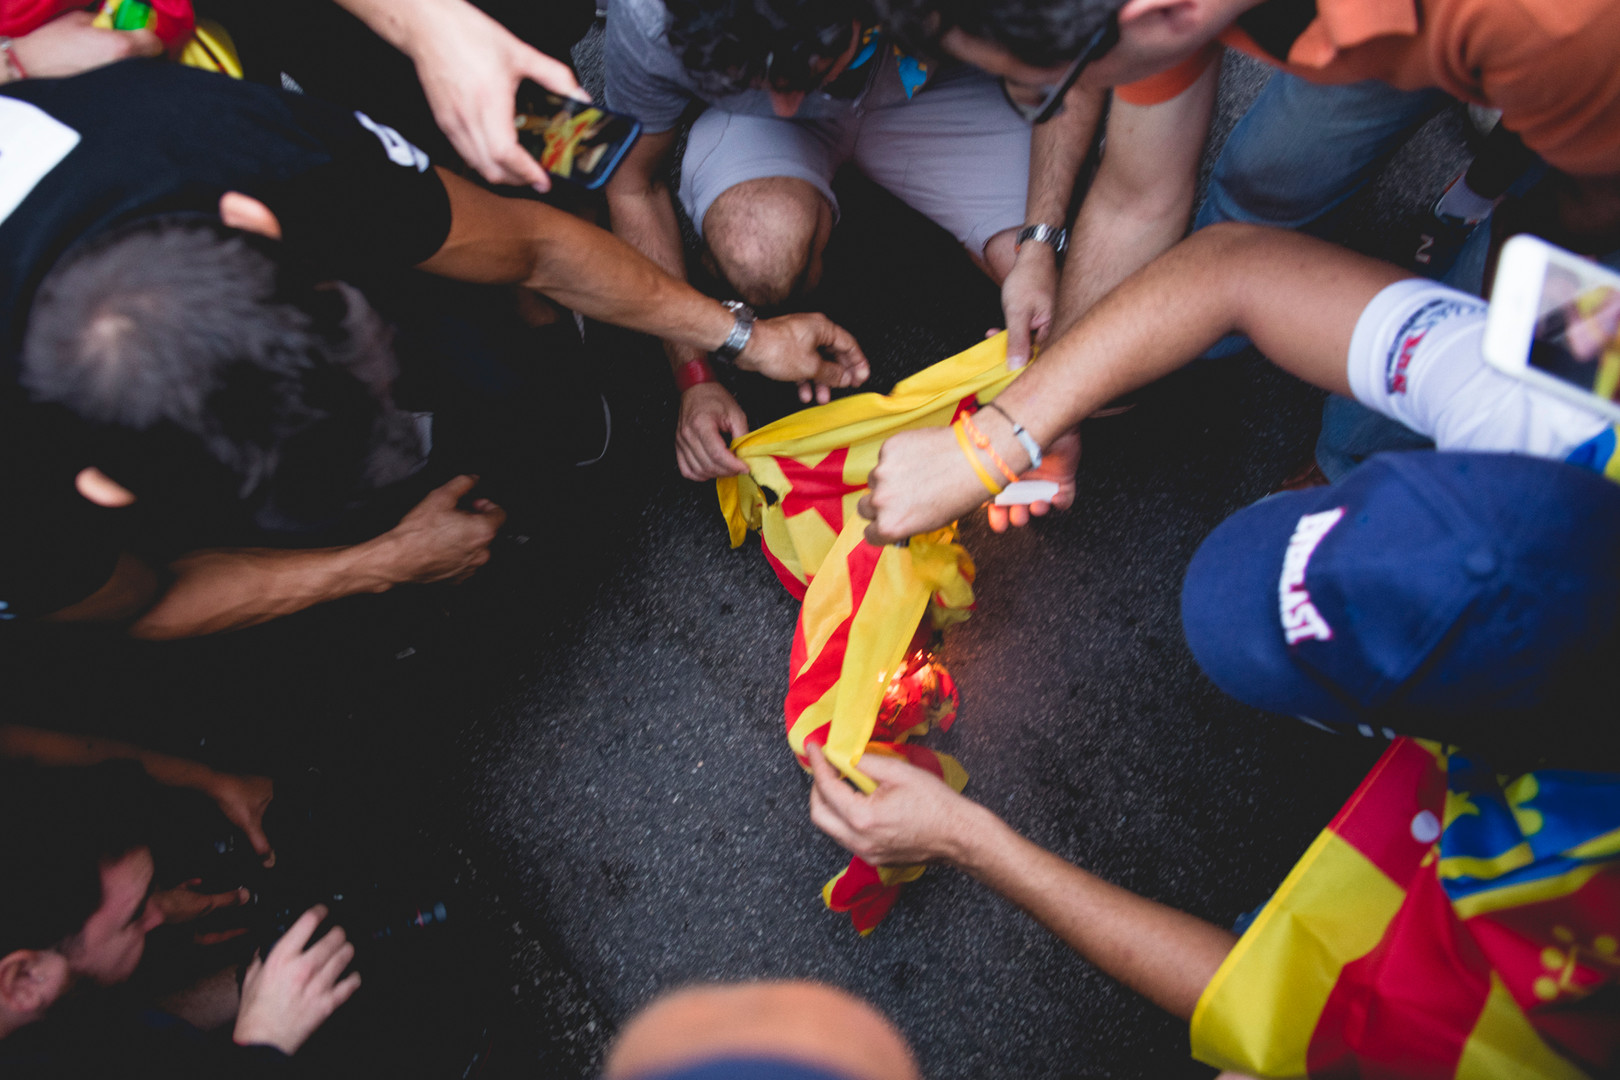 People from Valencia are burning the Catalunya's flag during a demonstration against the indipendence of the Valencian Comunity.